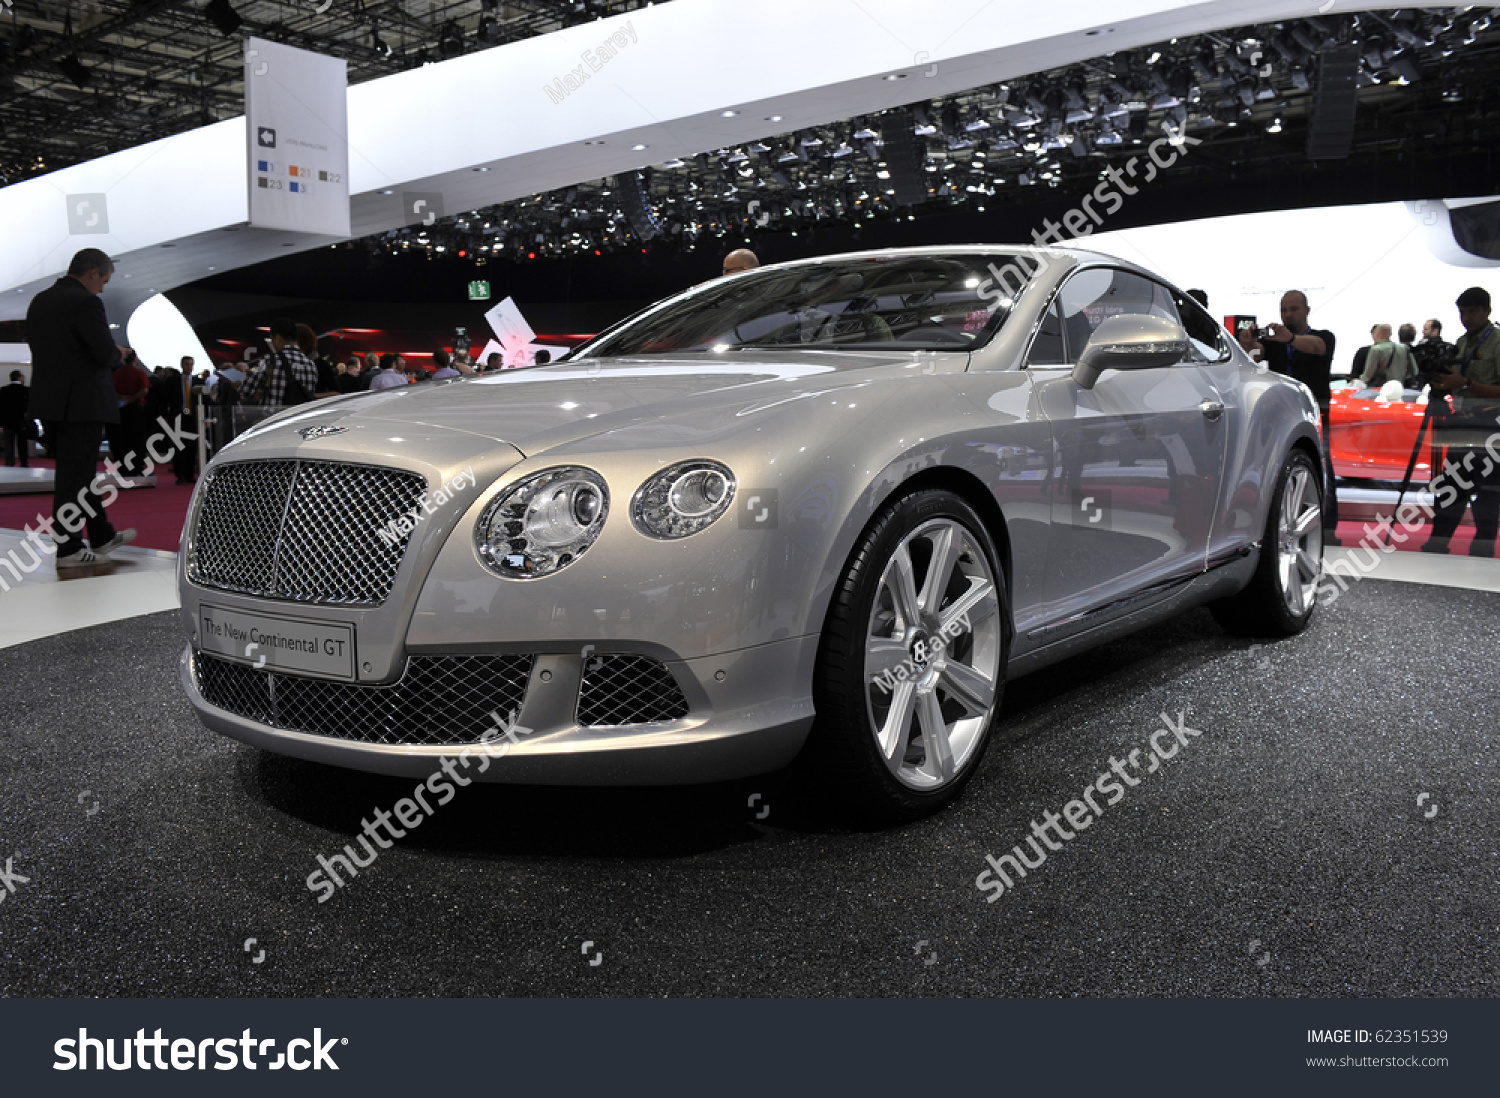 Paris france september 30 paris motor show on - Paris expo porte de versailles paris france ...